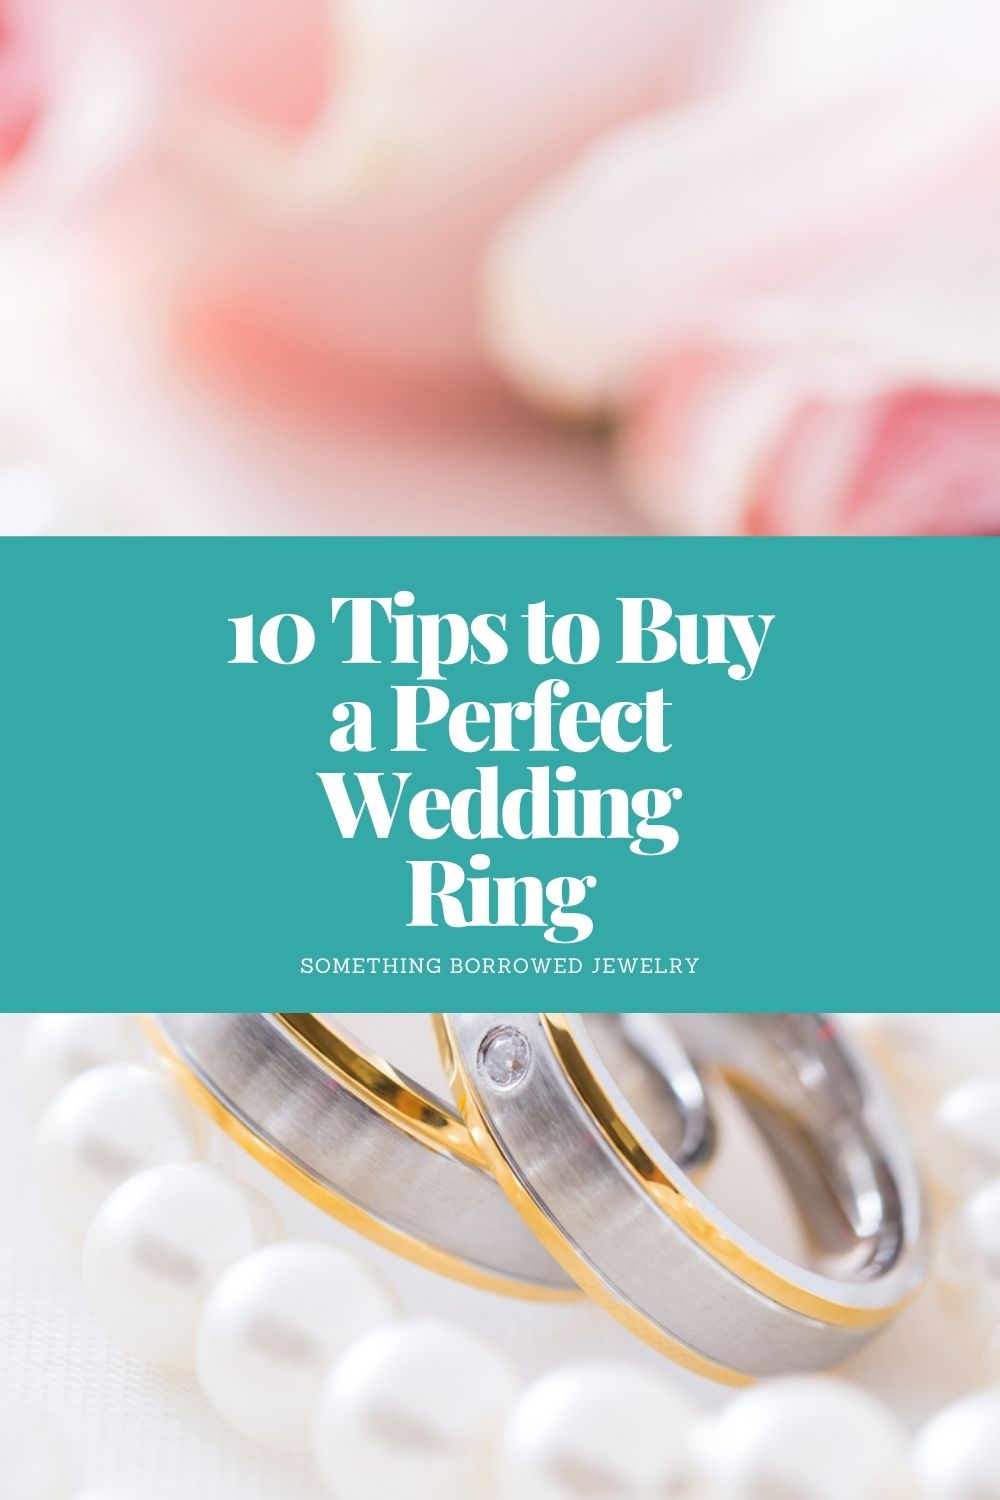 10 Tips to Buy a Perfect Wedding Ring pin 2